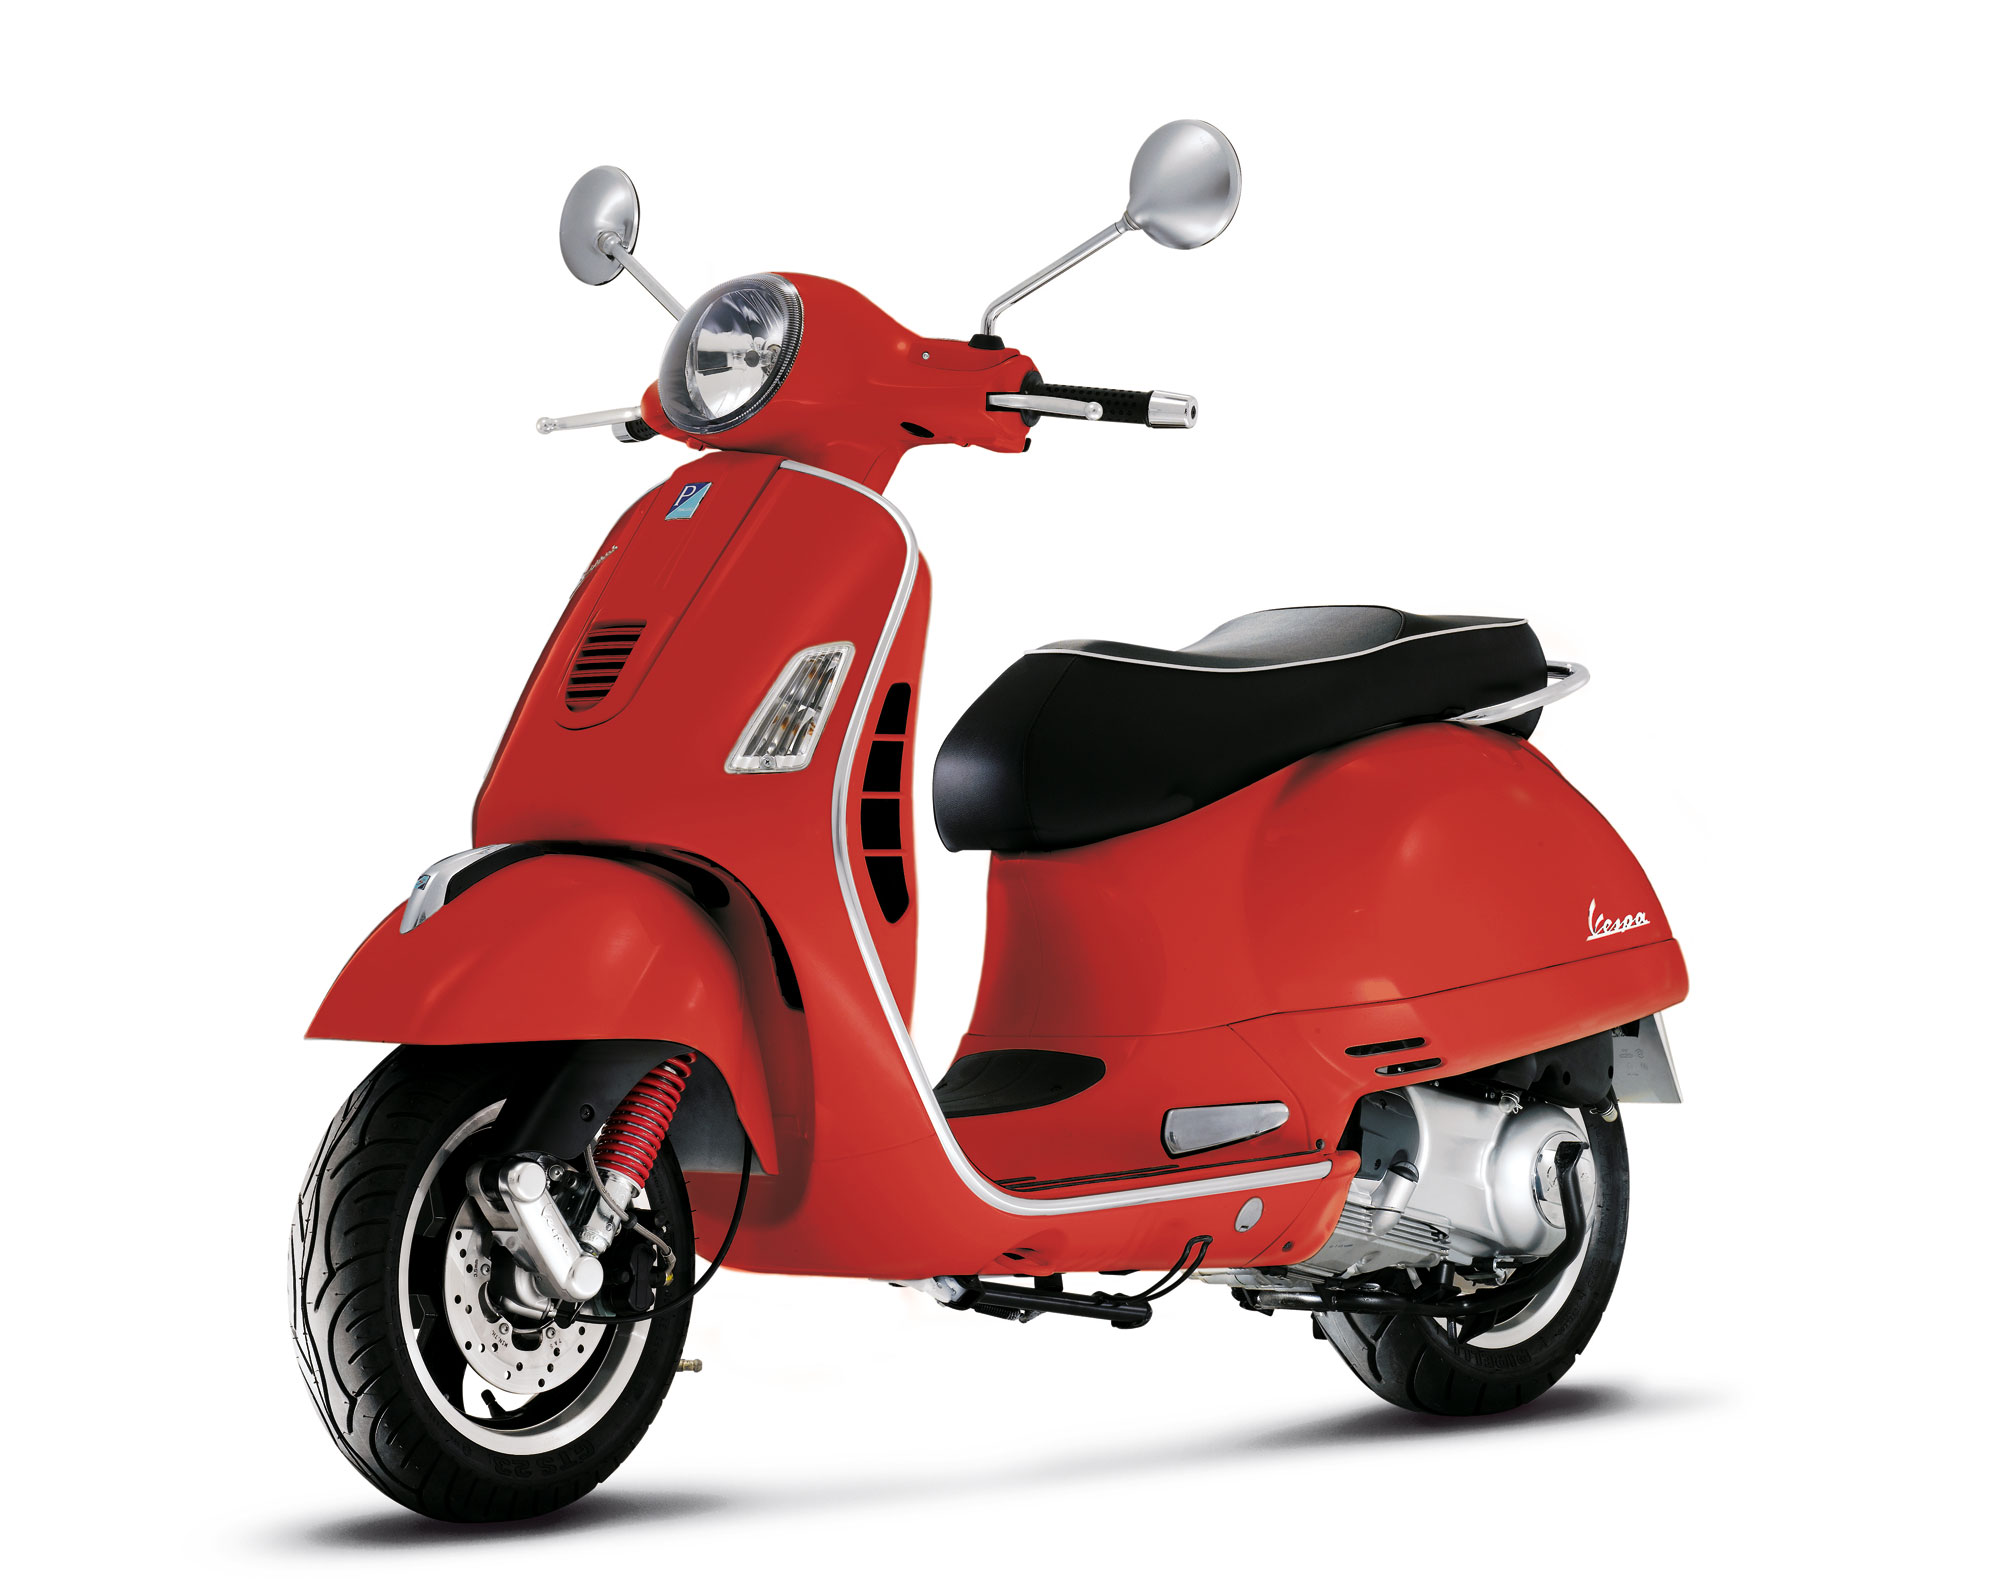 2013 Vespa GTS 300ie Super Scooter Reviewvespa